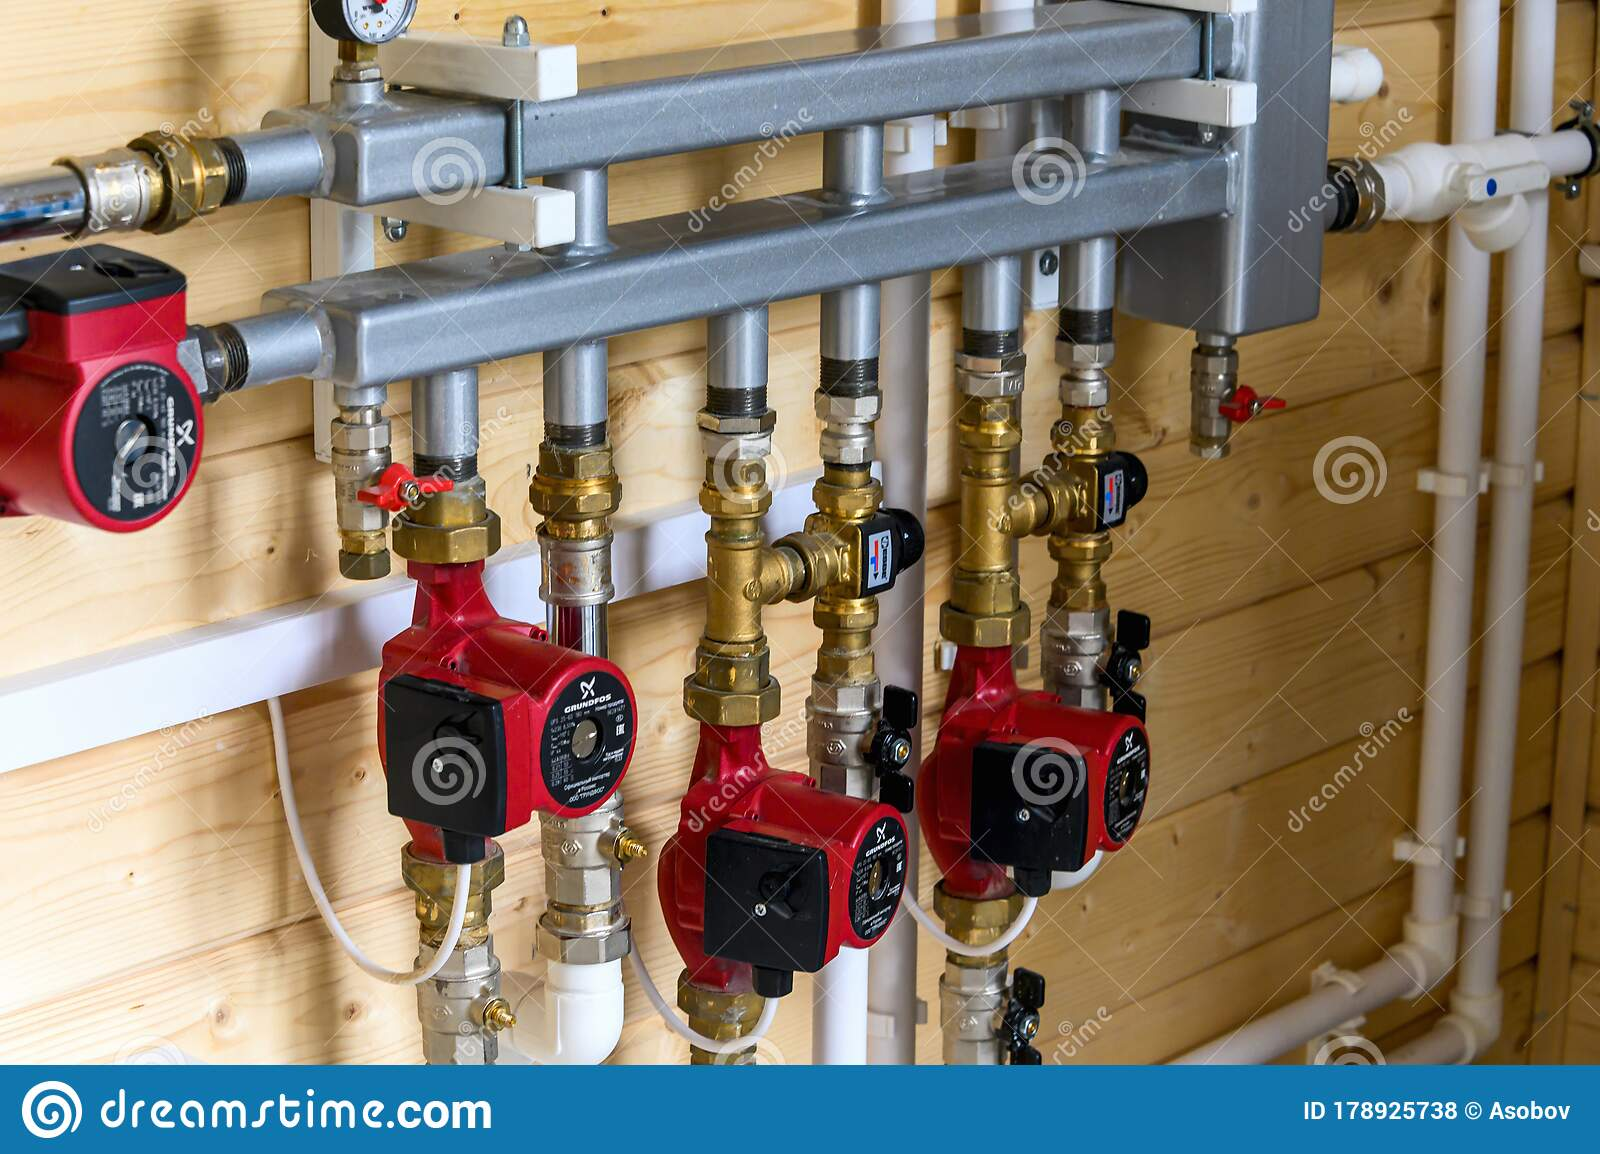 Wiring Of Engineering Systems In A Residential Building